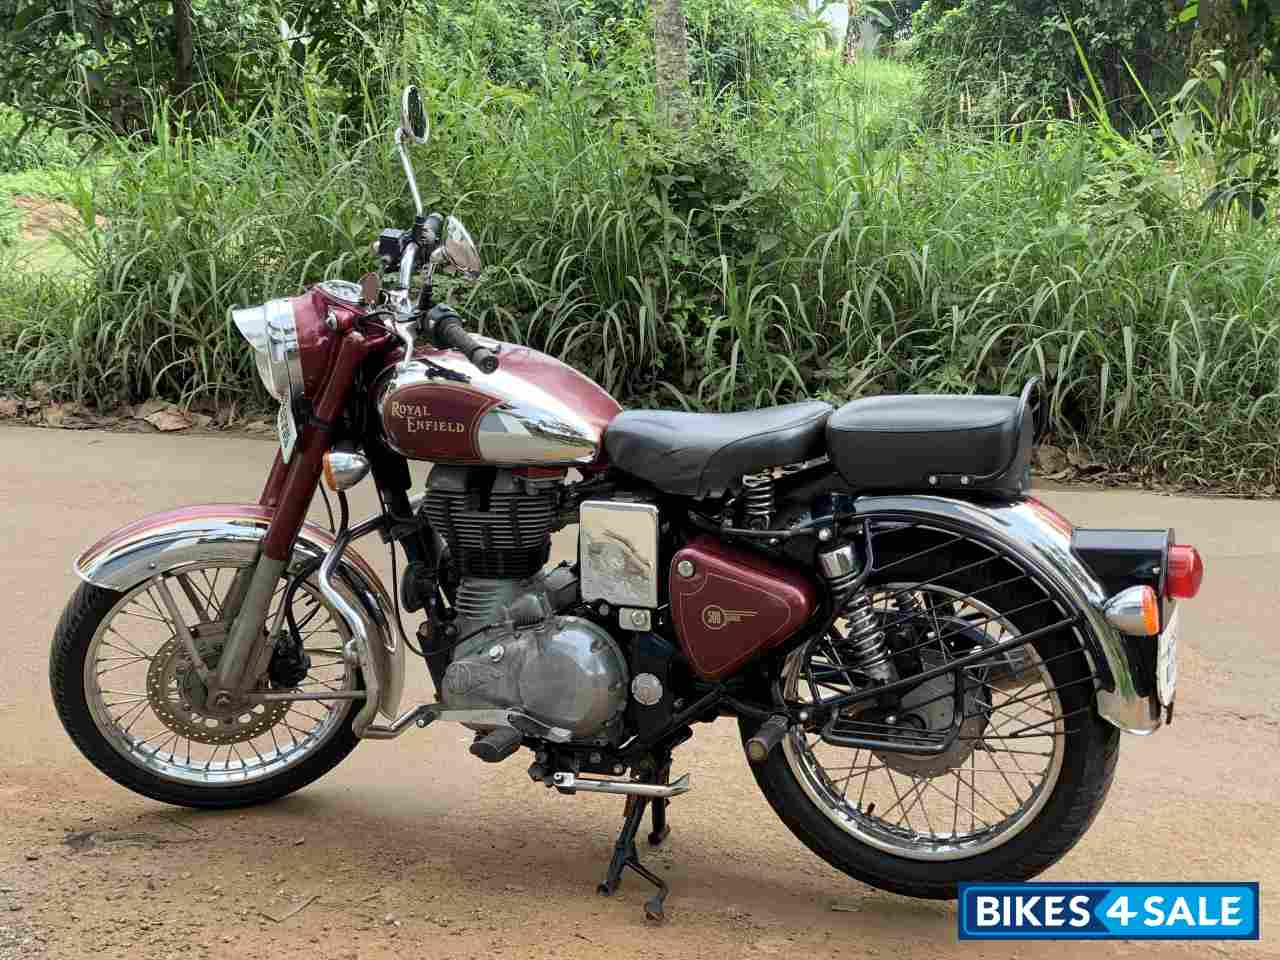 Used 2012 Model Royal Enfield Classic Chrome For Sale In Malappuram Id 307991 Maroon Colour Bikes4sale